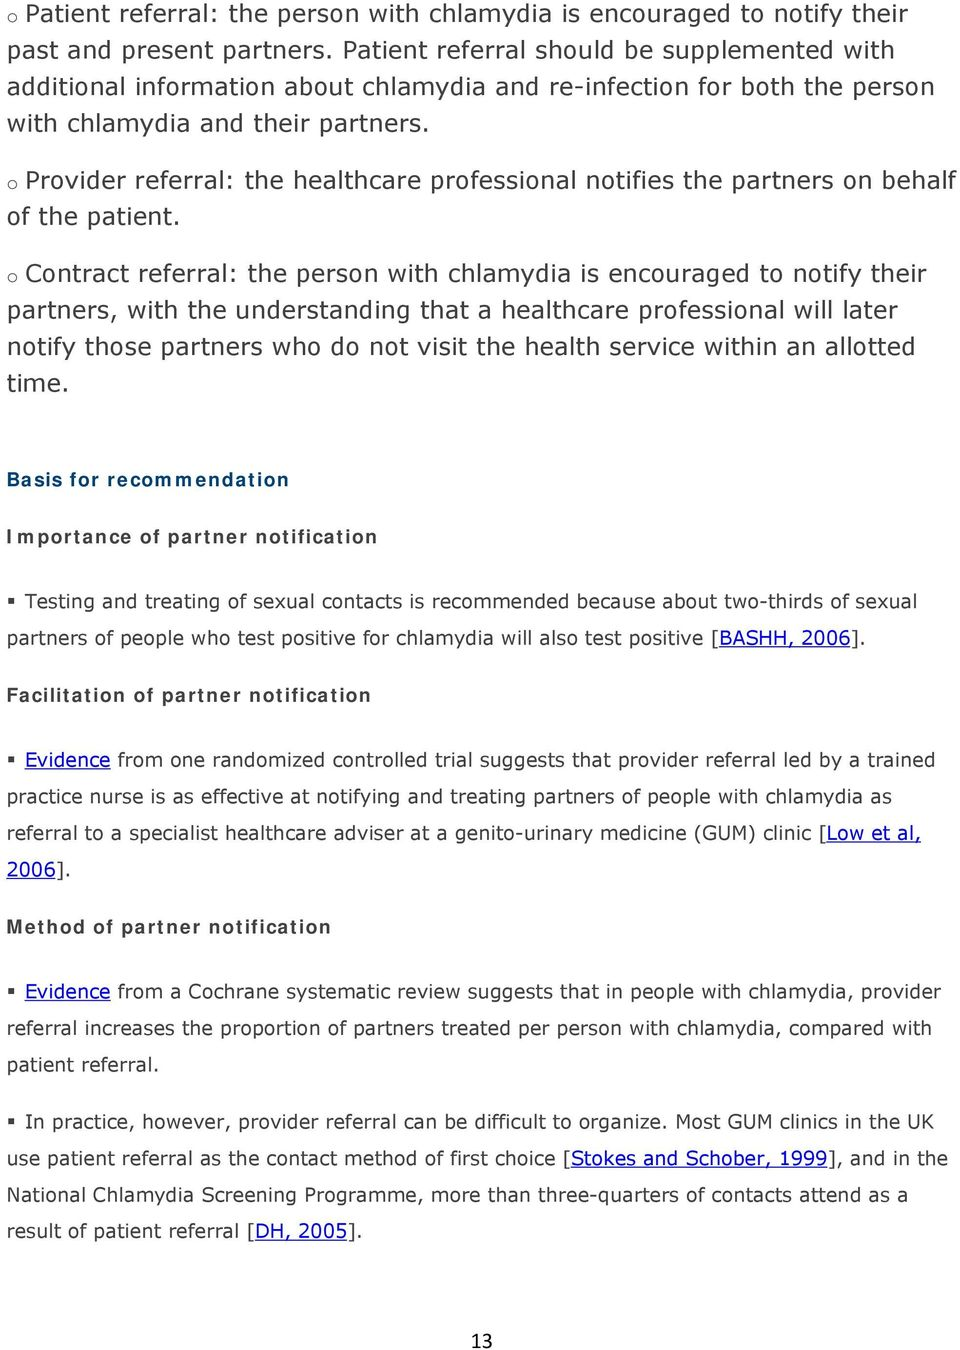 o Provider referral: the healthcare professional notifies the partners on behalf of the patient.